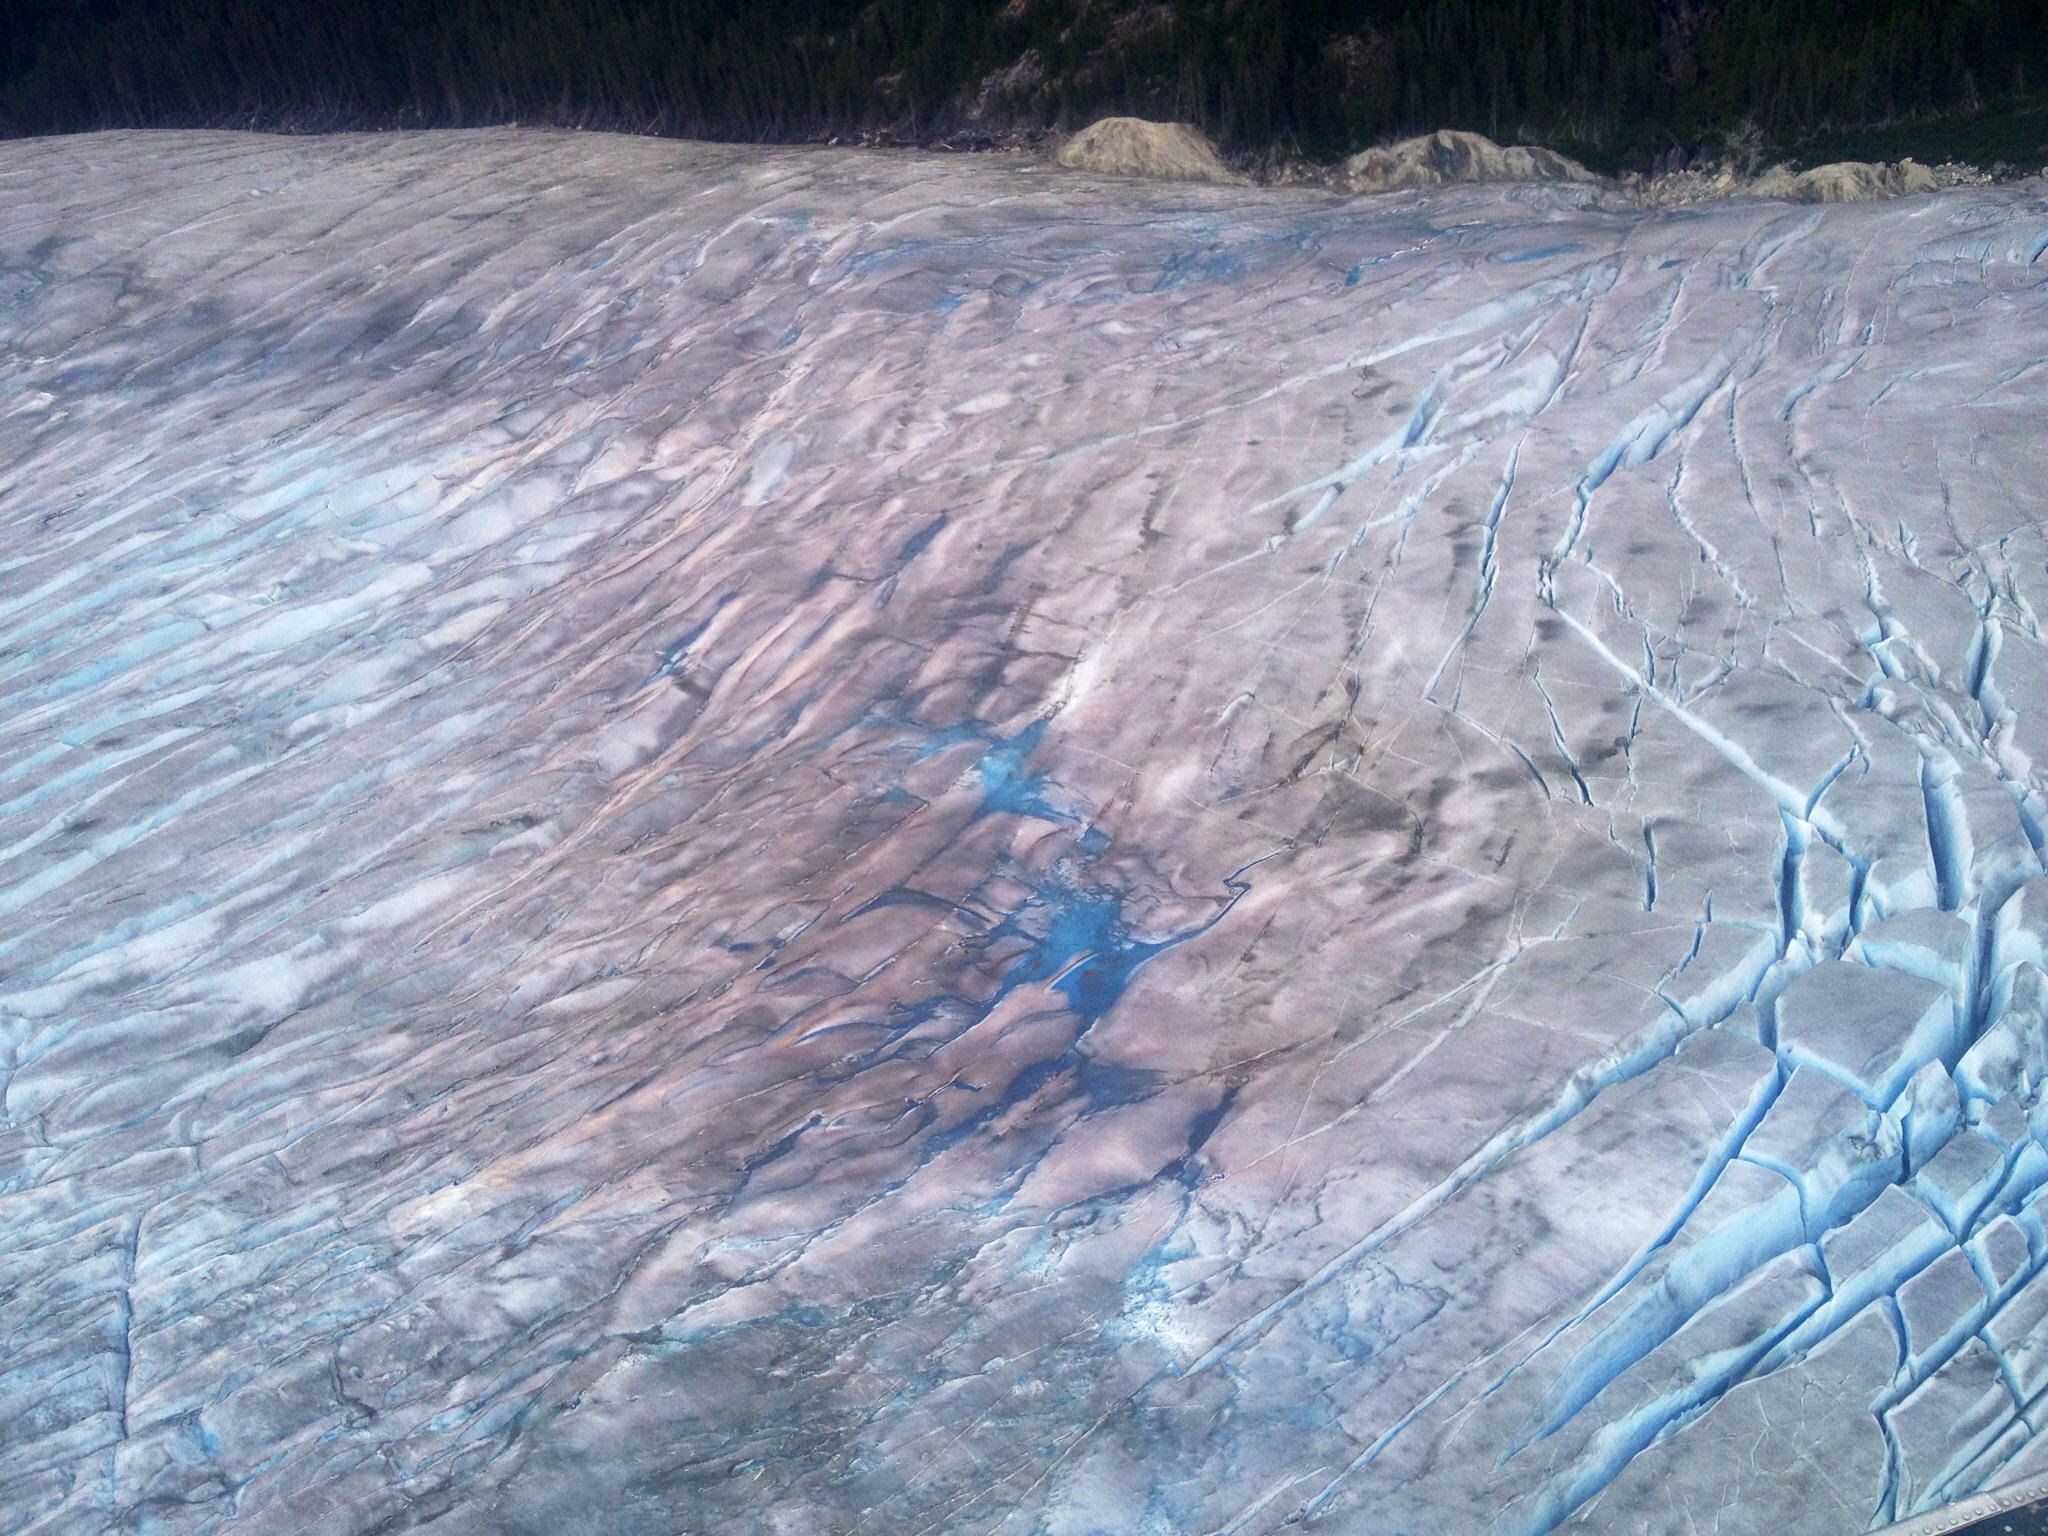 Juneau Ice Field: You can easily see the difference in the blue color. The color fades and oxidizes once the crystals are exposed to air.